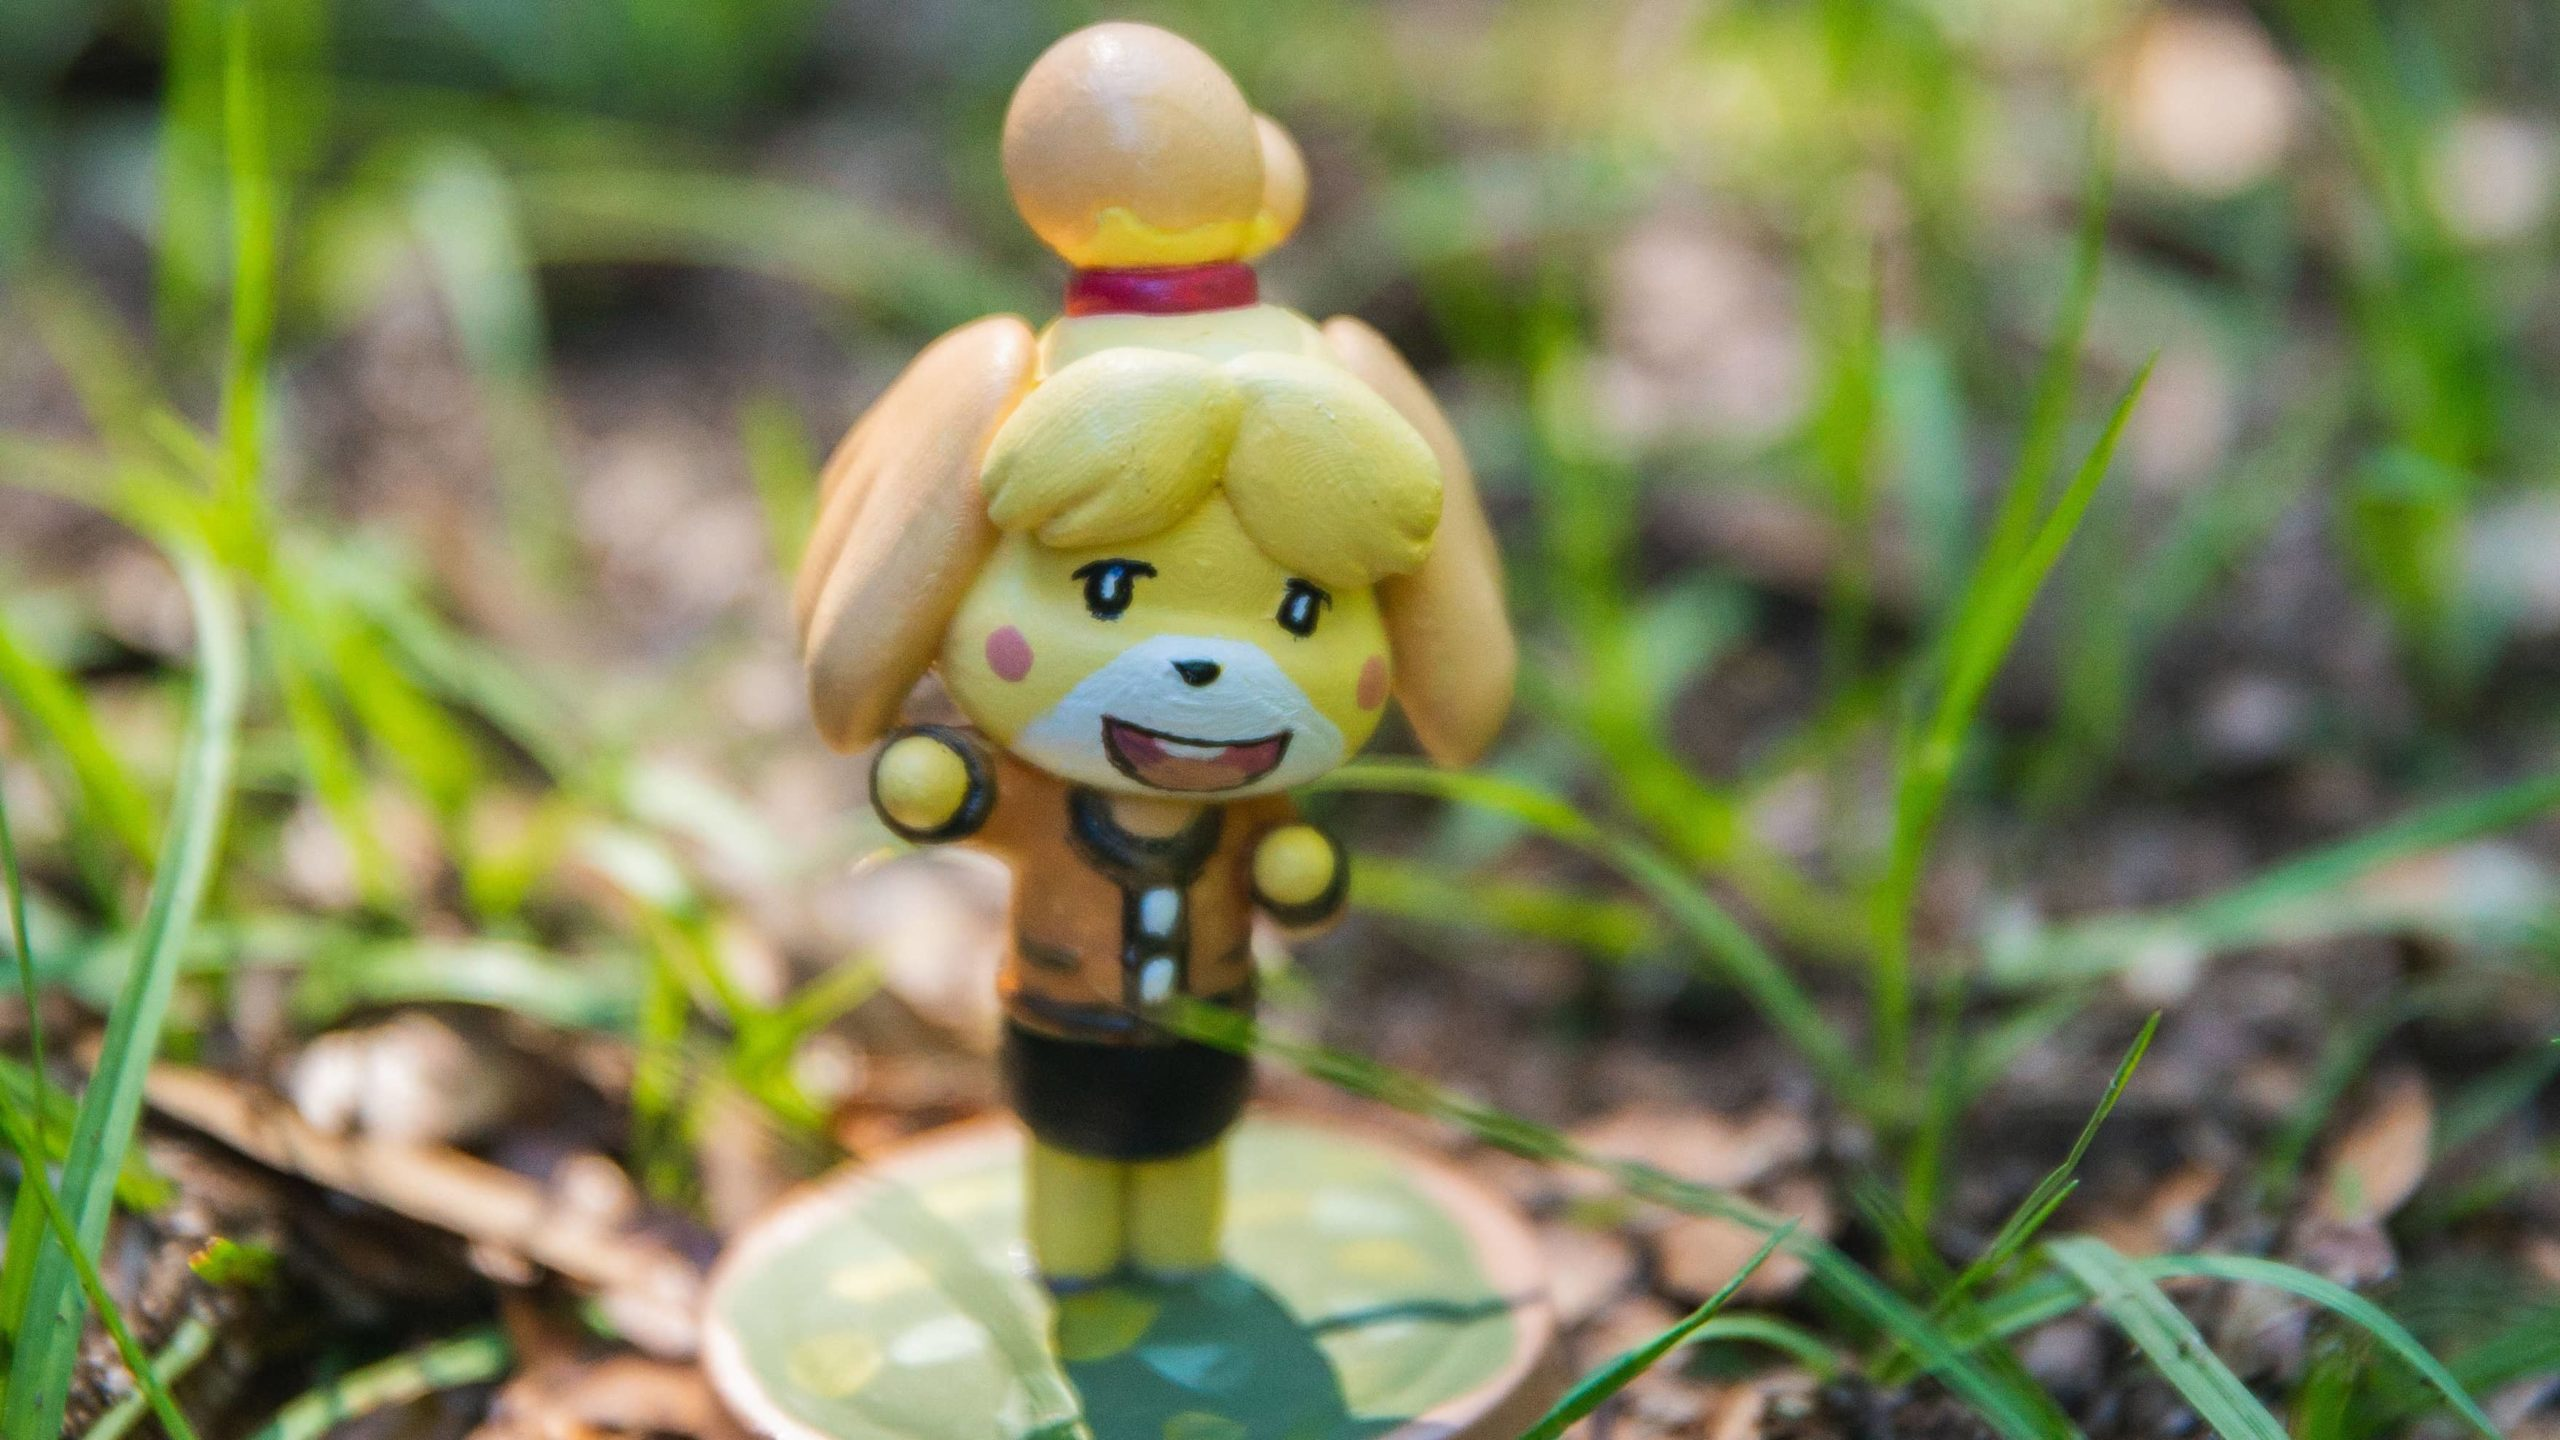 Animal Crossing 3D Print: 15+ Models for Your IRL Island | All3DP